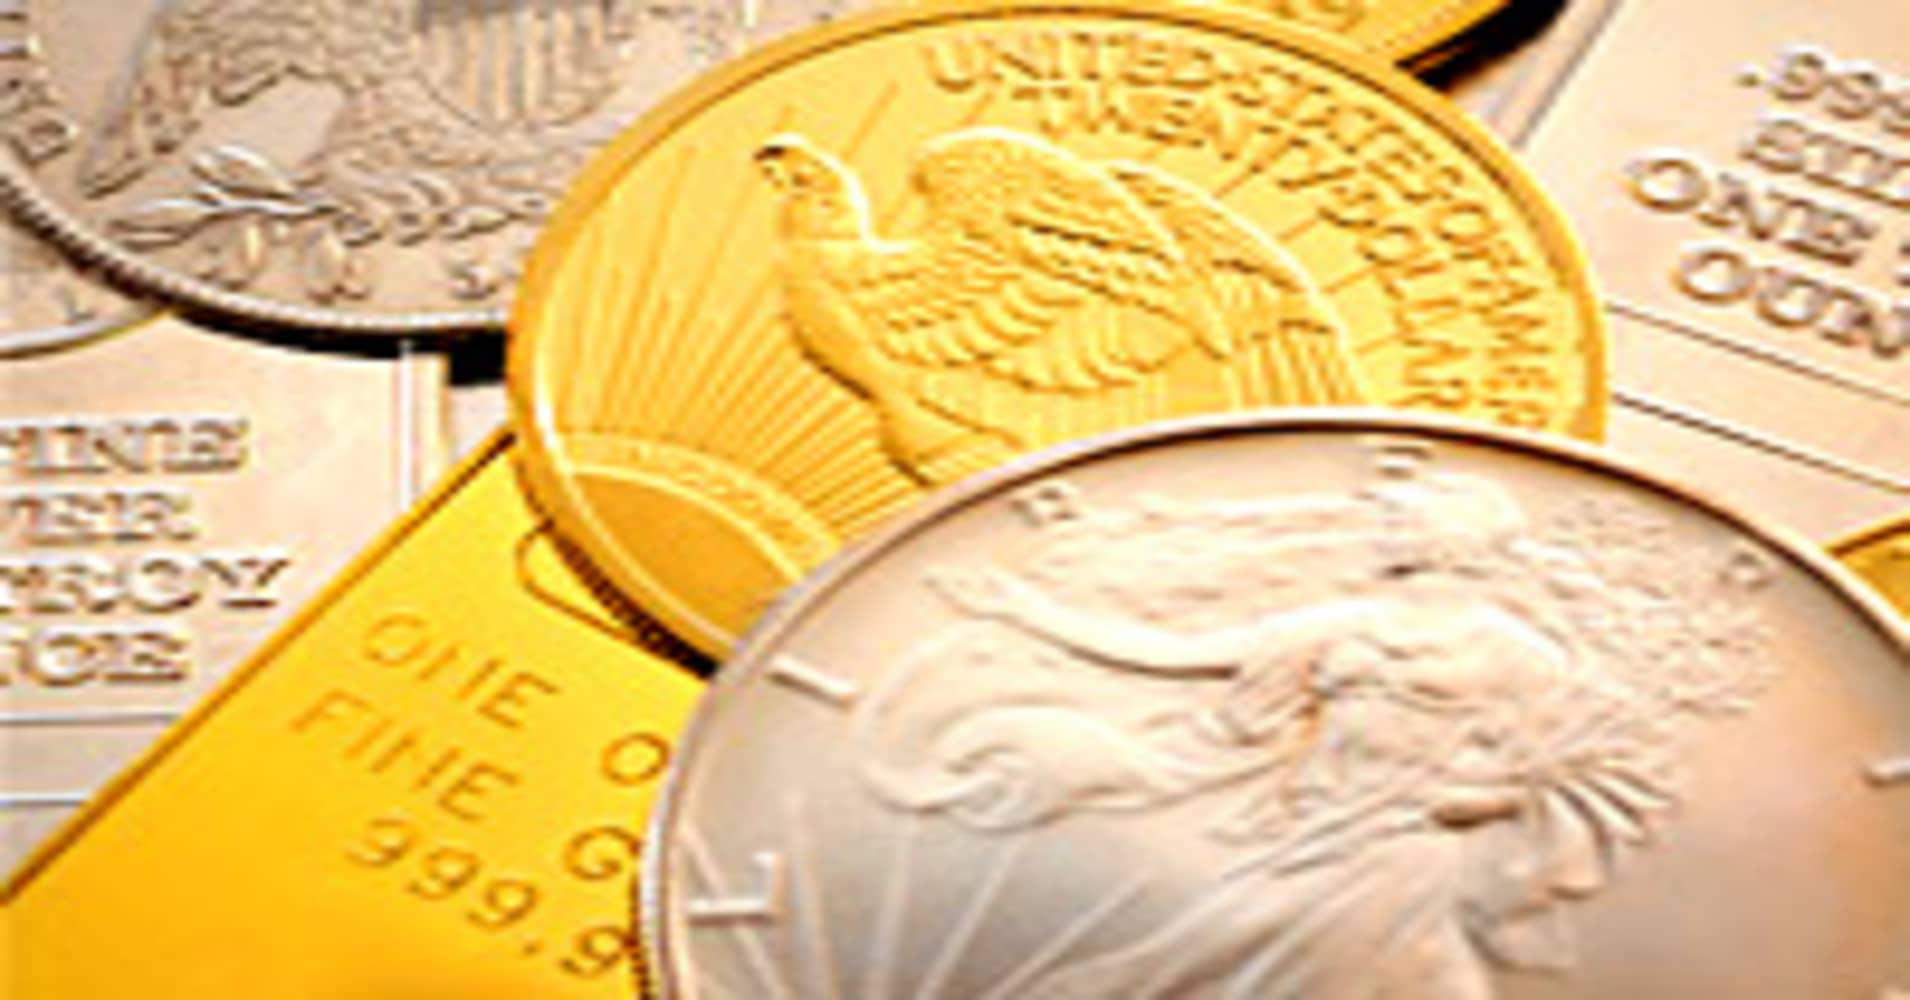 Utah Law Makes Coins Worth Their Weight